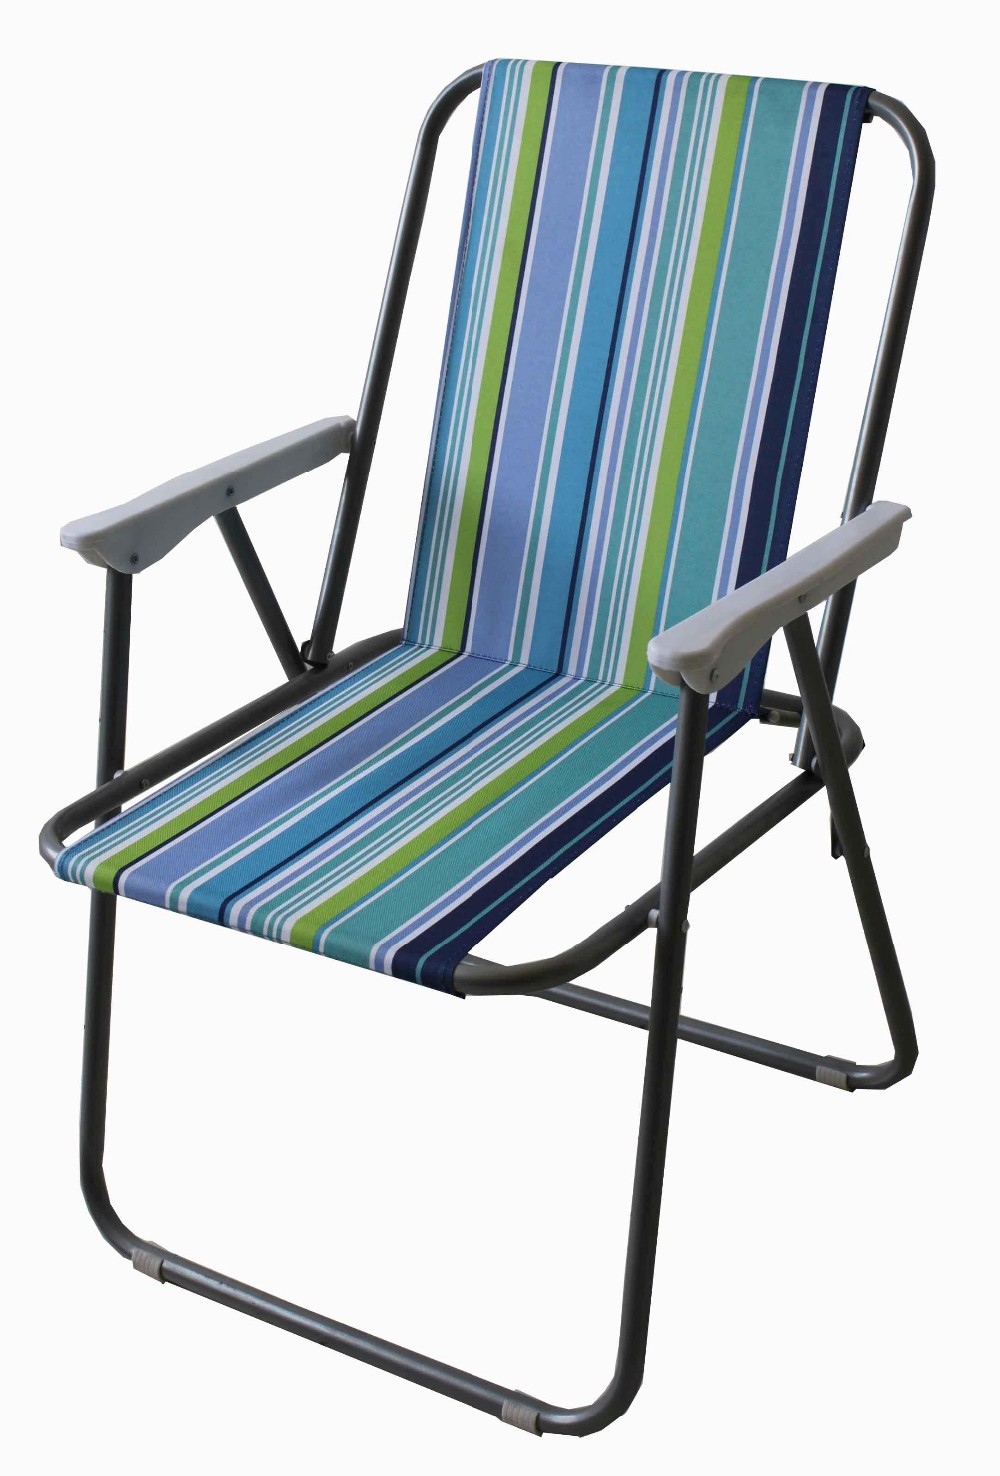 Outdoor swing chair with stand - Top Selling Garden Double Hanging Swing Chair Outdoor Swing Chair With Stand Chair Swing